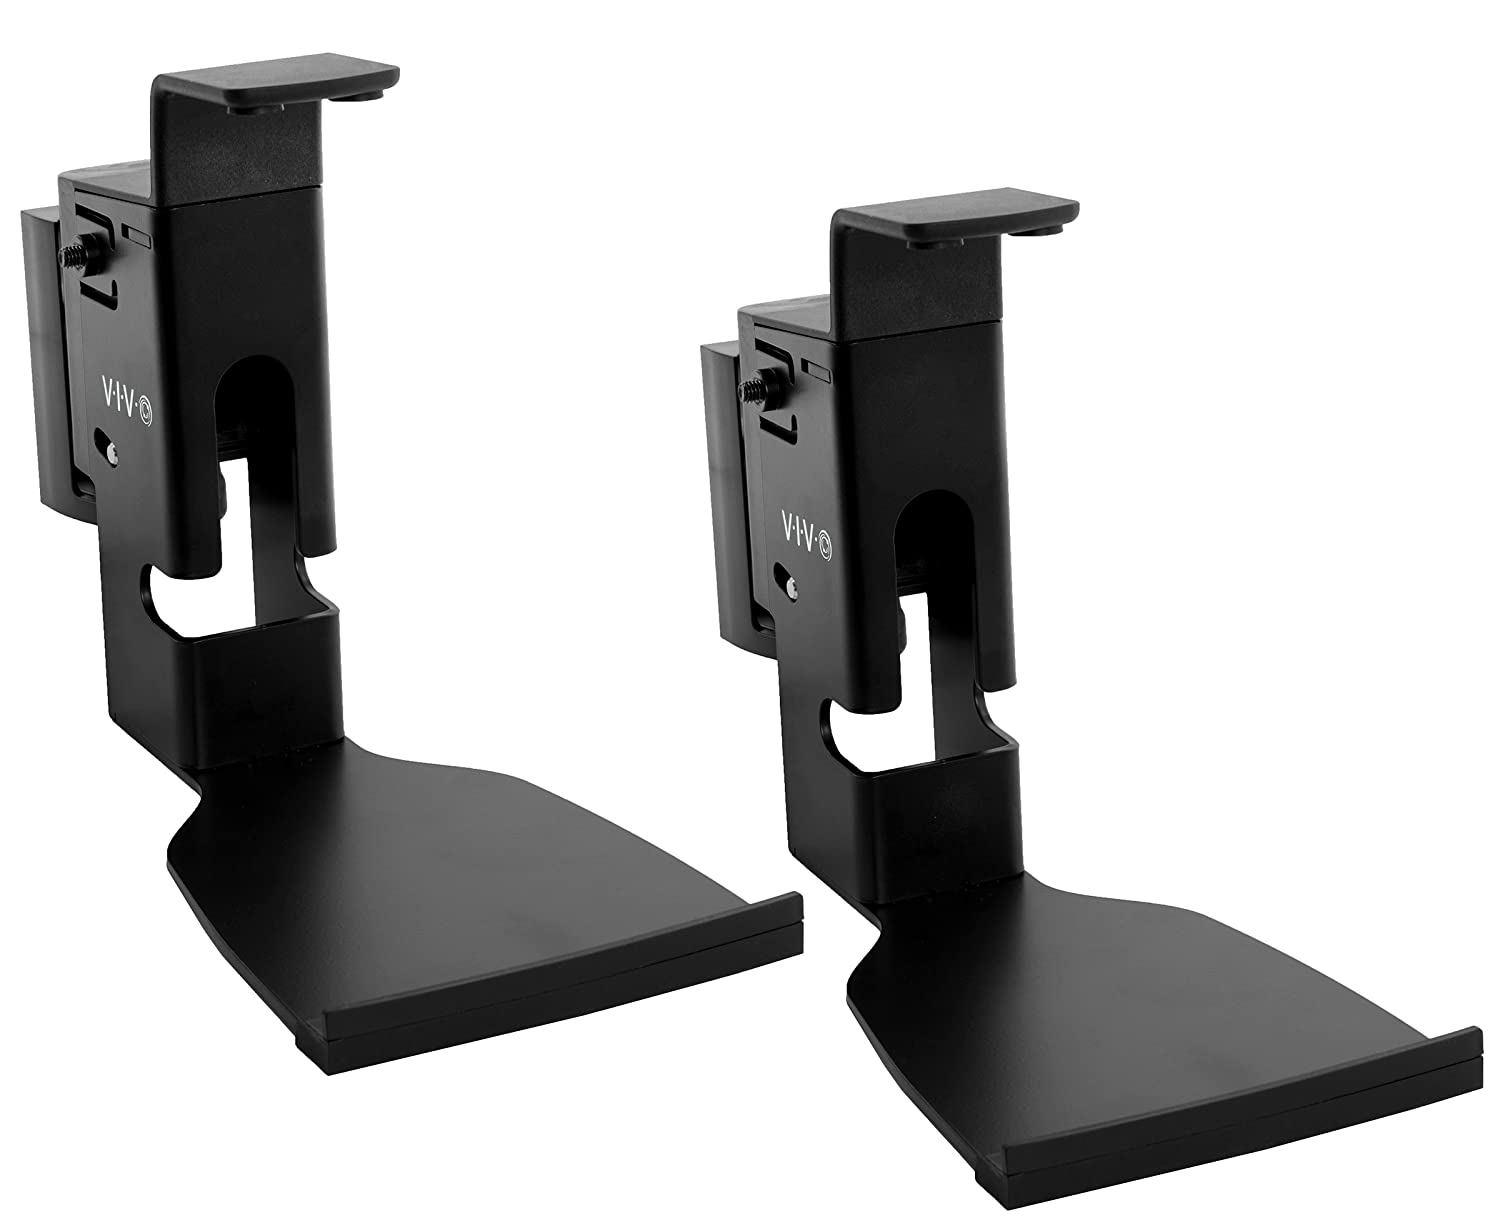 VIVO Black Dual Wall Mount Designed for SONOS Play 5 Gen 2 Brackets - Adjustable Tilt, Swivel Mounting for Two (2) Play:5 Audio Speakers (MOUNT-PLAY5B)